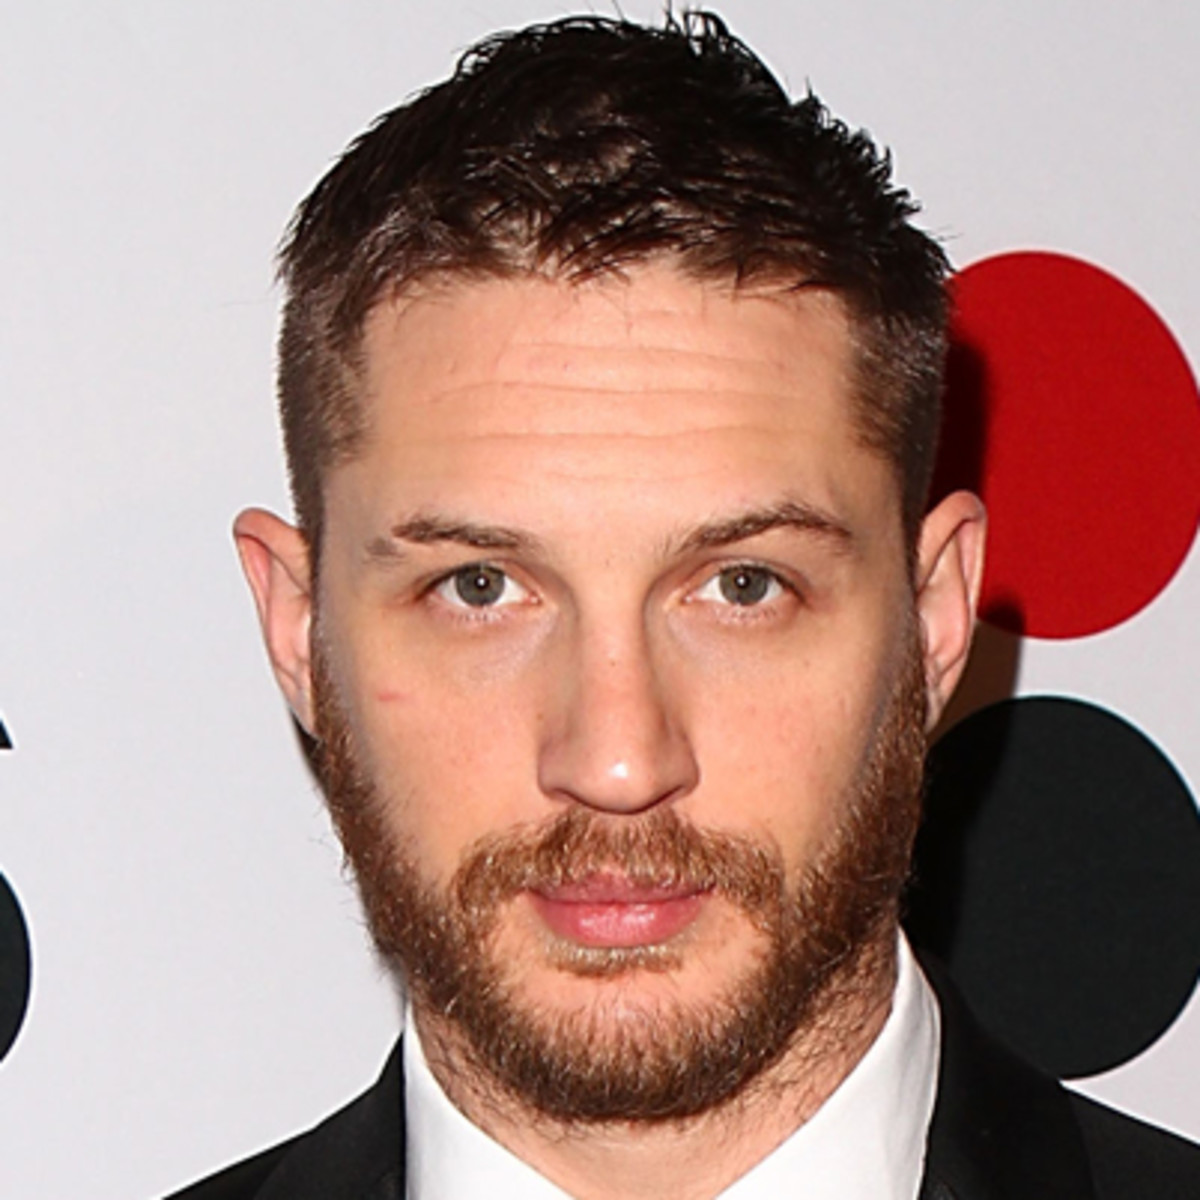 Tom Hardy - Television Actor, Actor, Film Actor - Biography